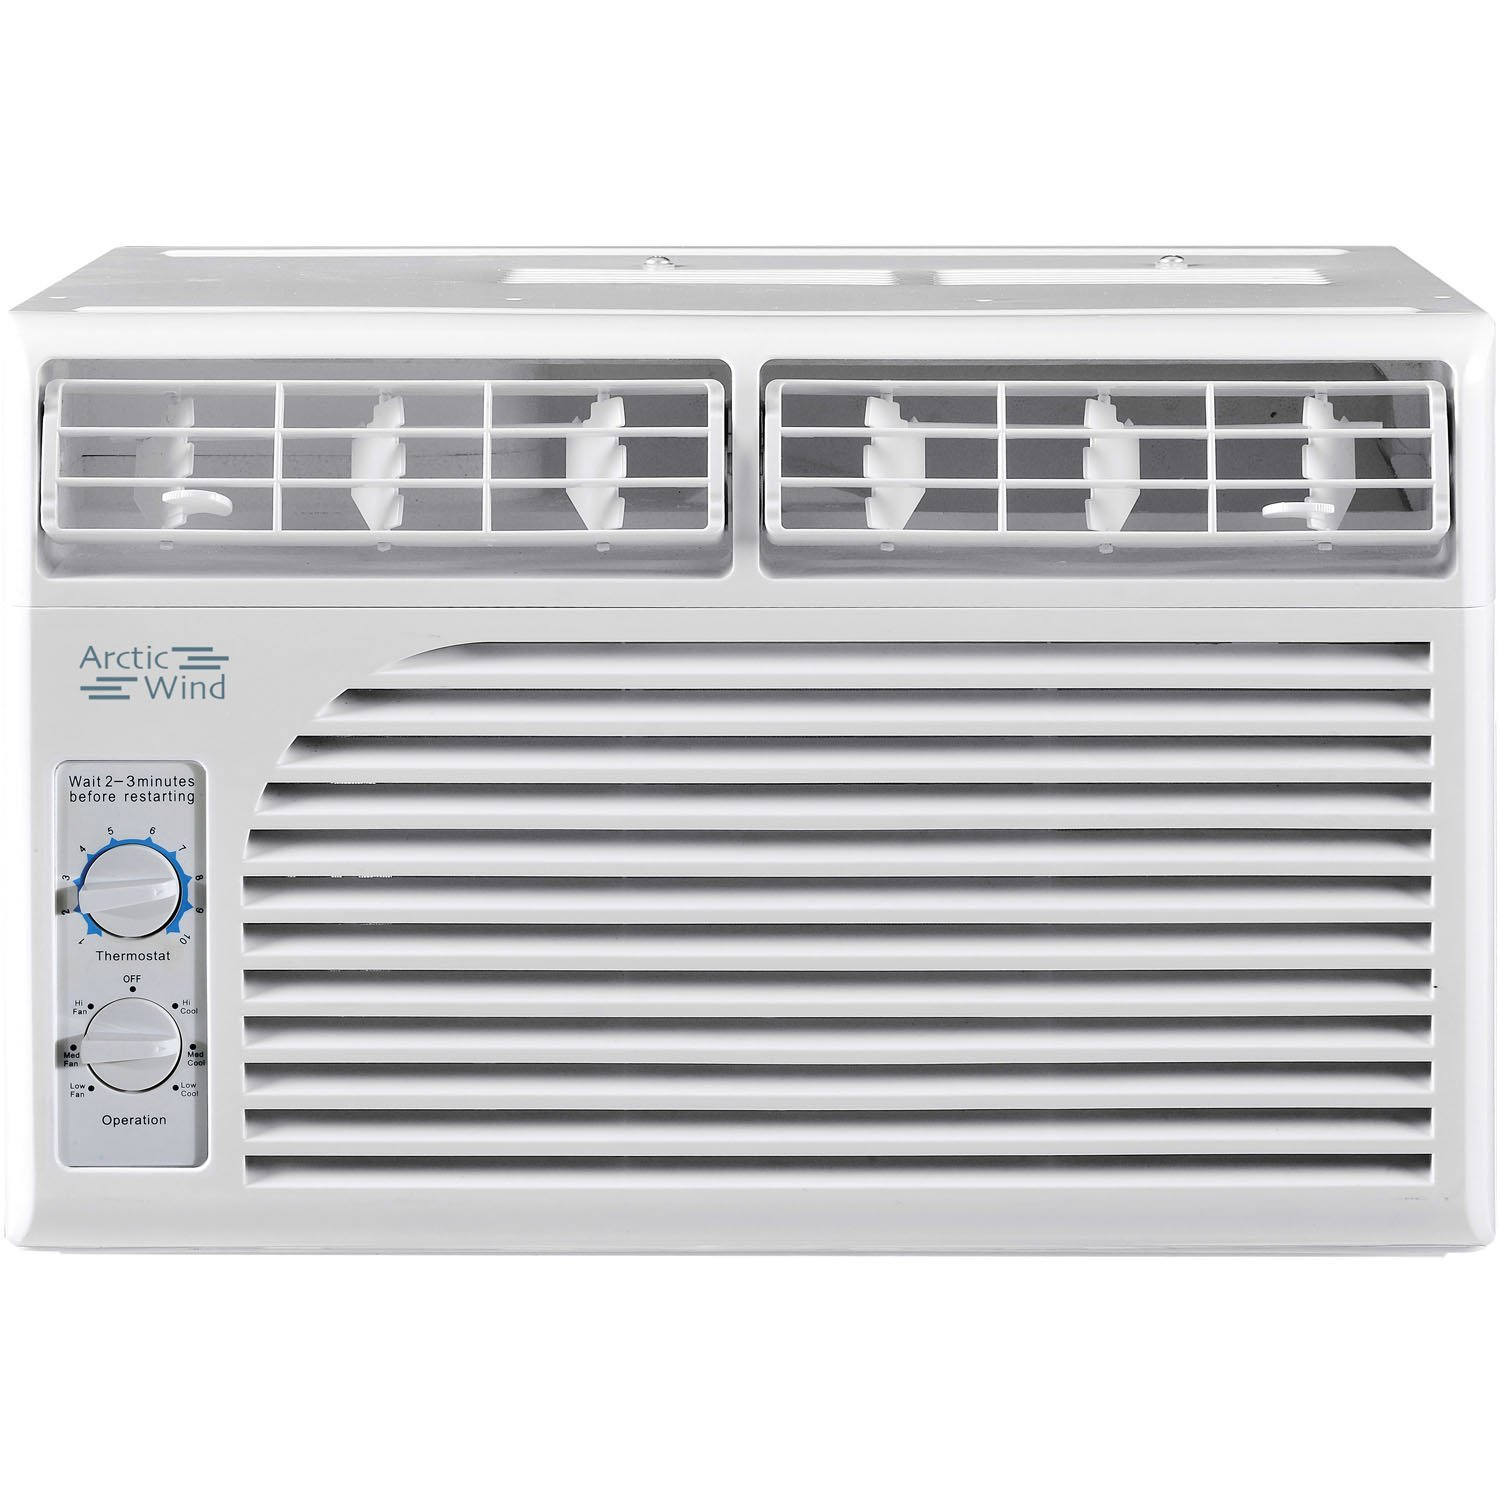 ARCTIC Wind 5,000 BTU Window Air Conditioner with Mechanical Controls, ba by ARCTIC